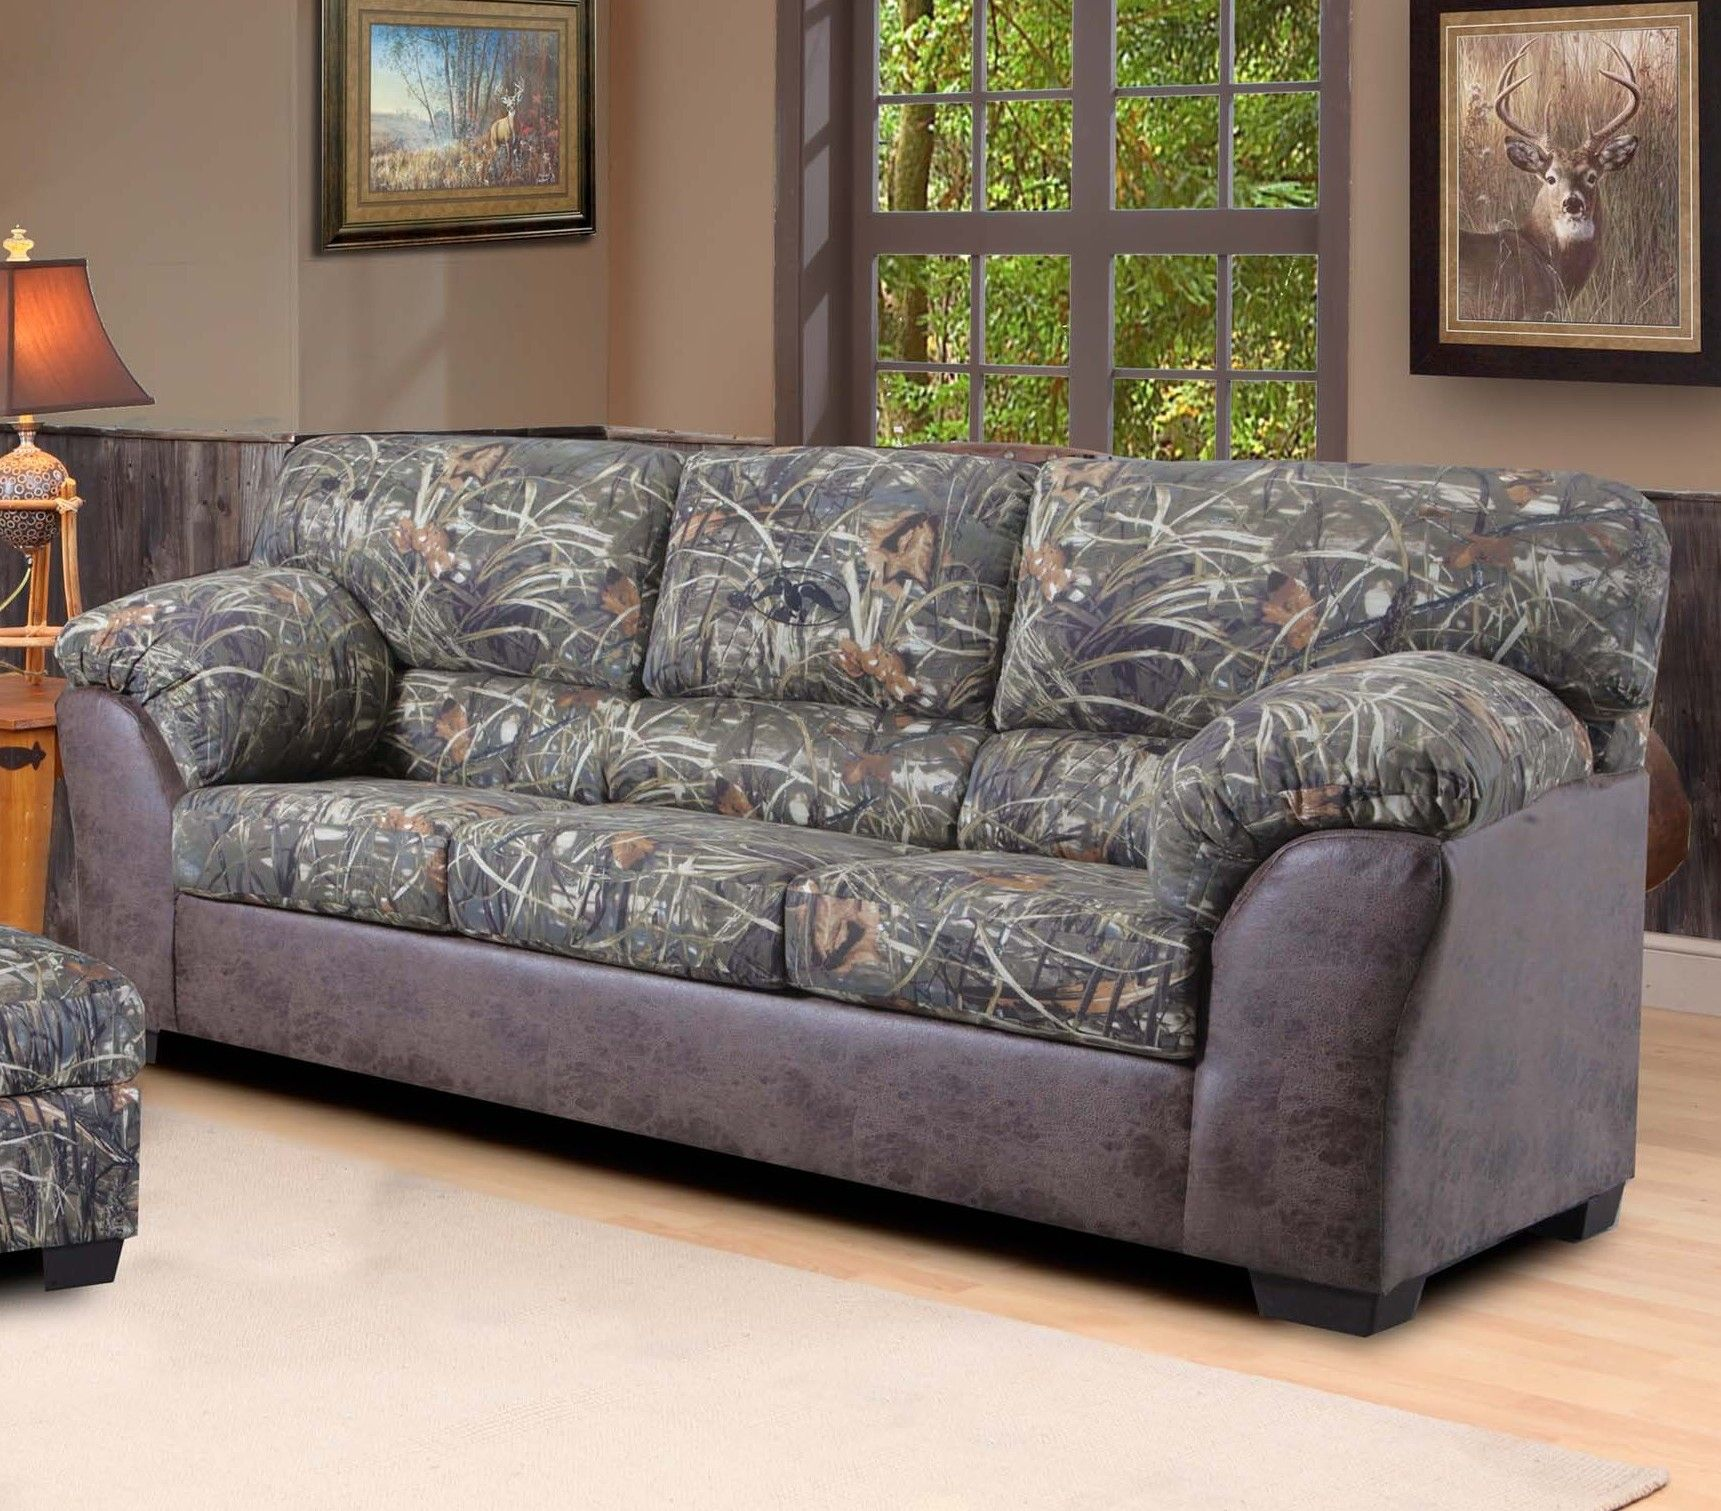 Duck Commander Sofa In Camouflage Fabric